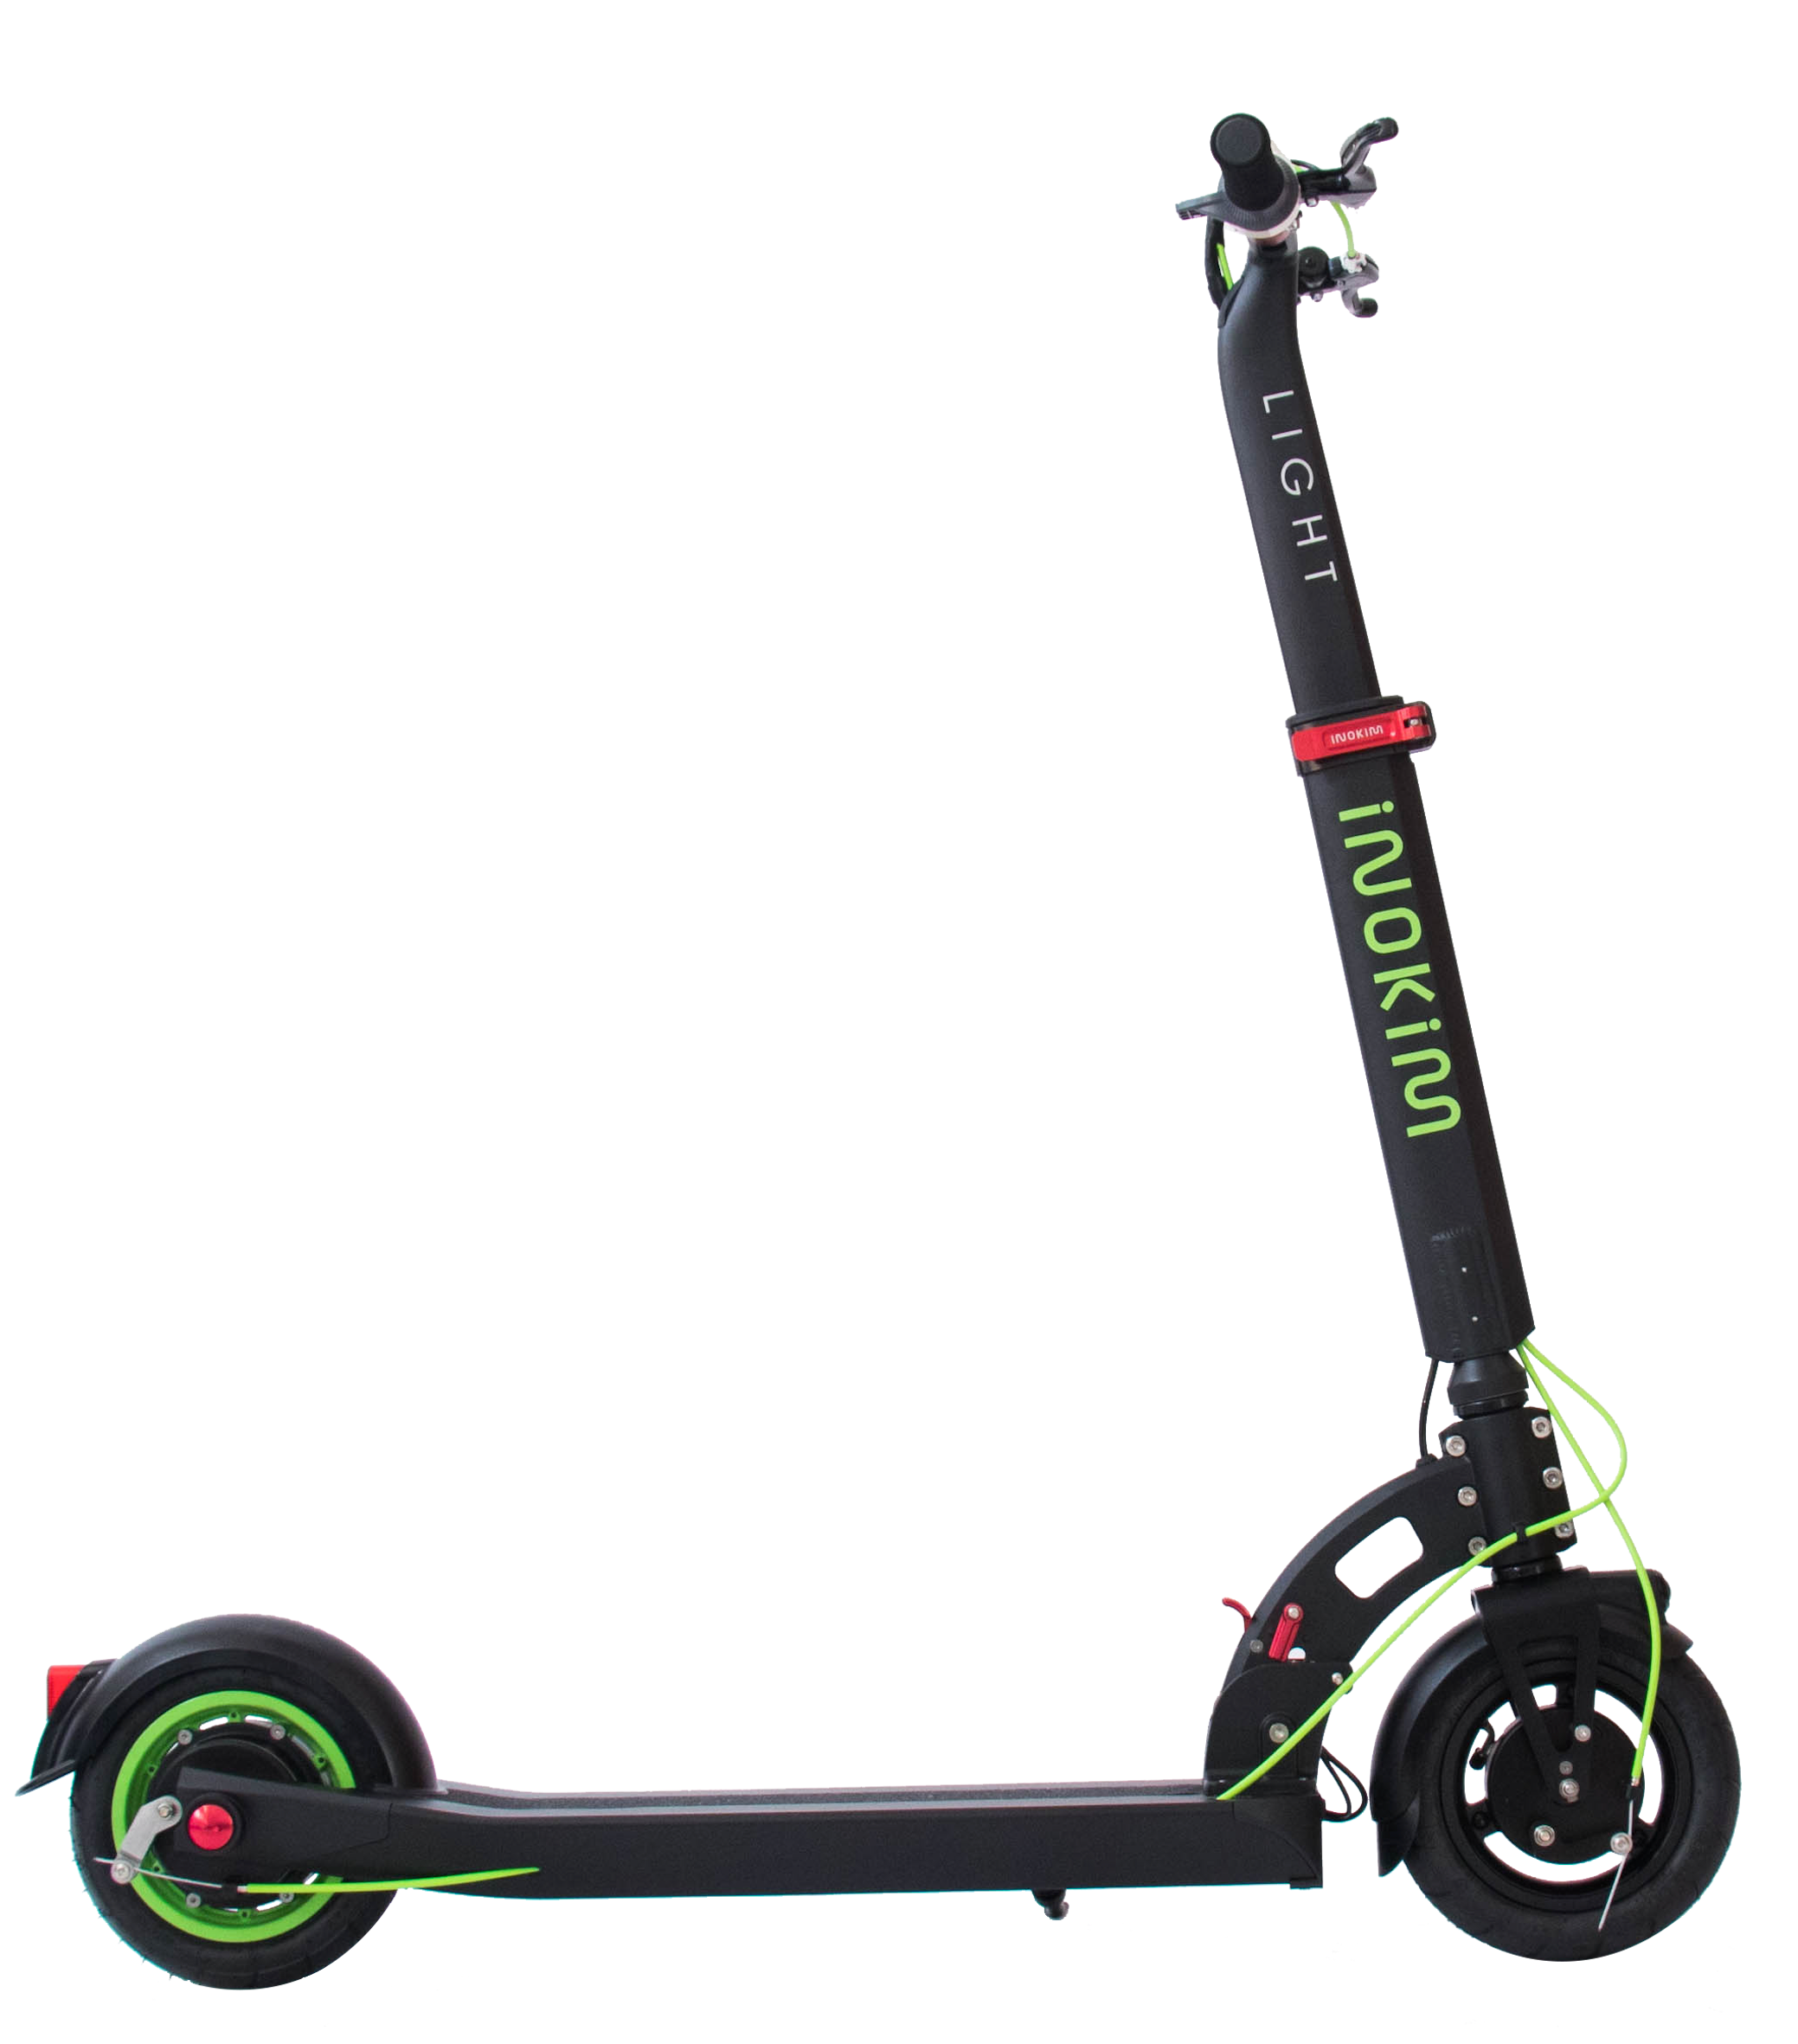 Inokim Light 2 Electric Scooter Side View Image